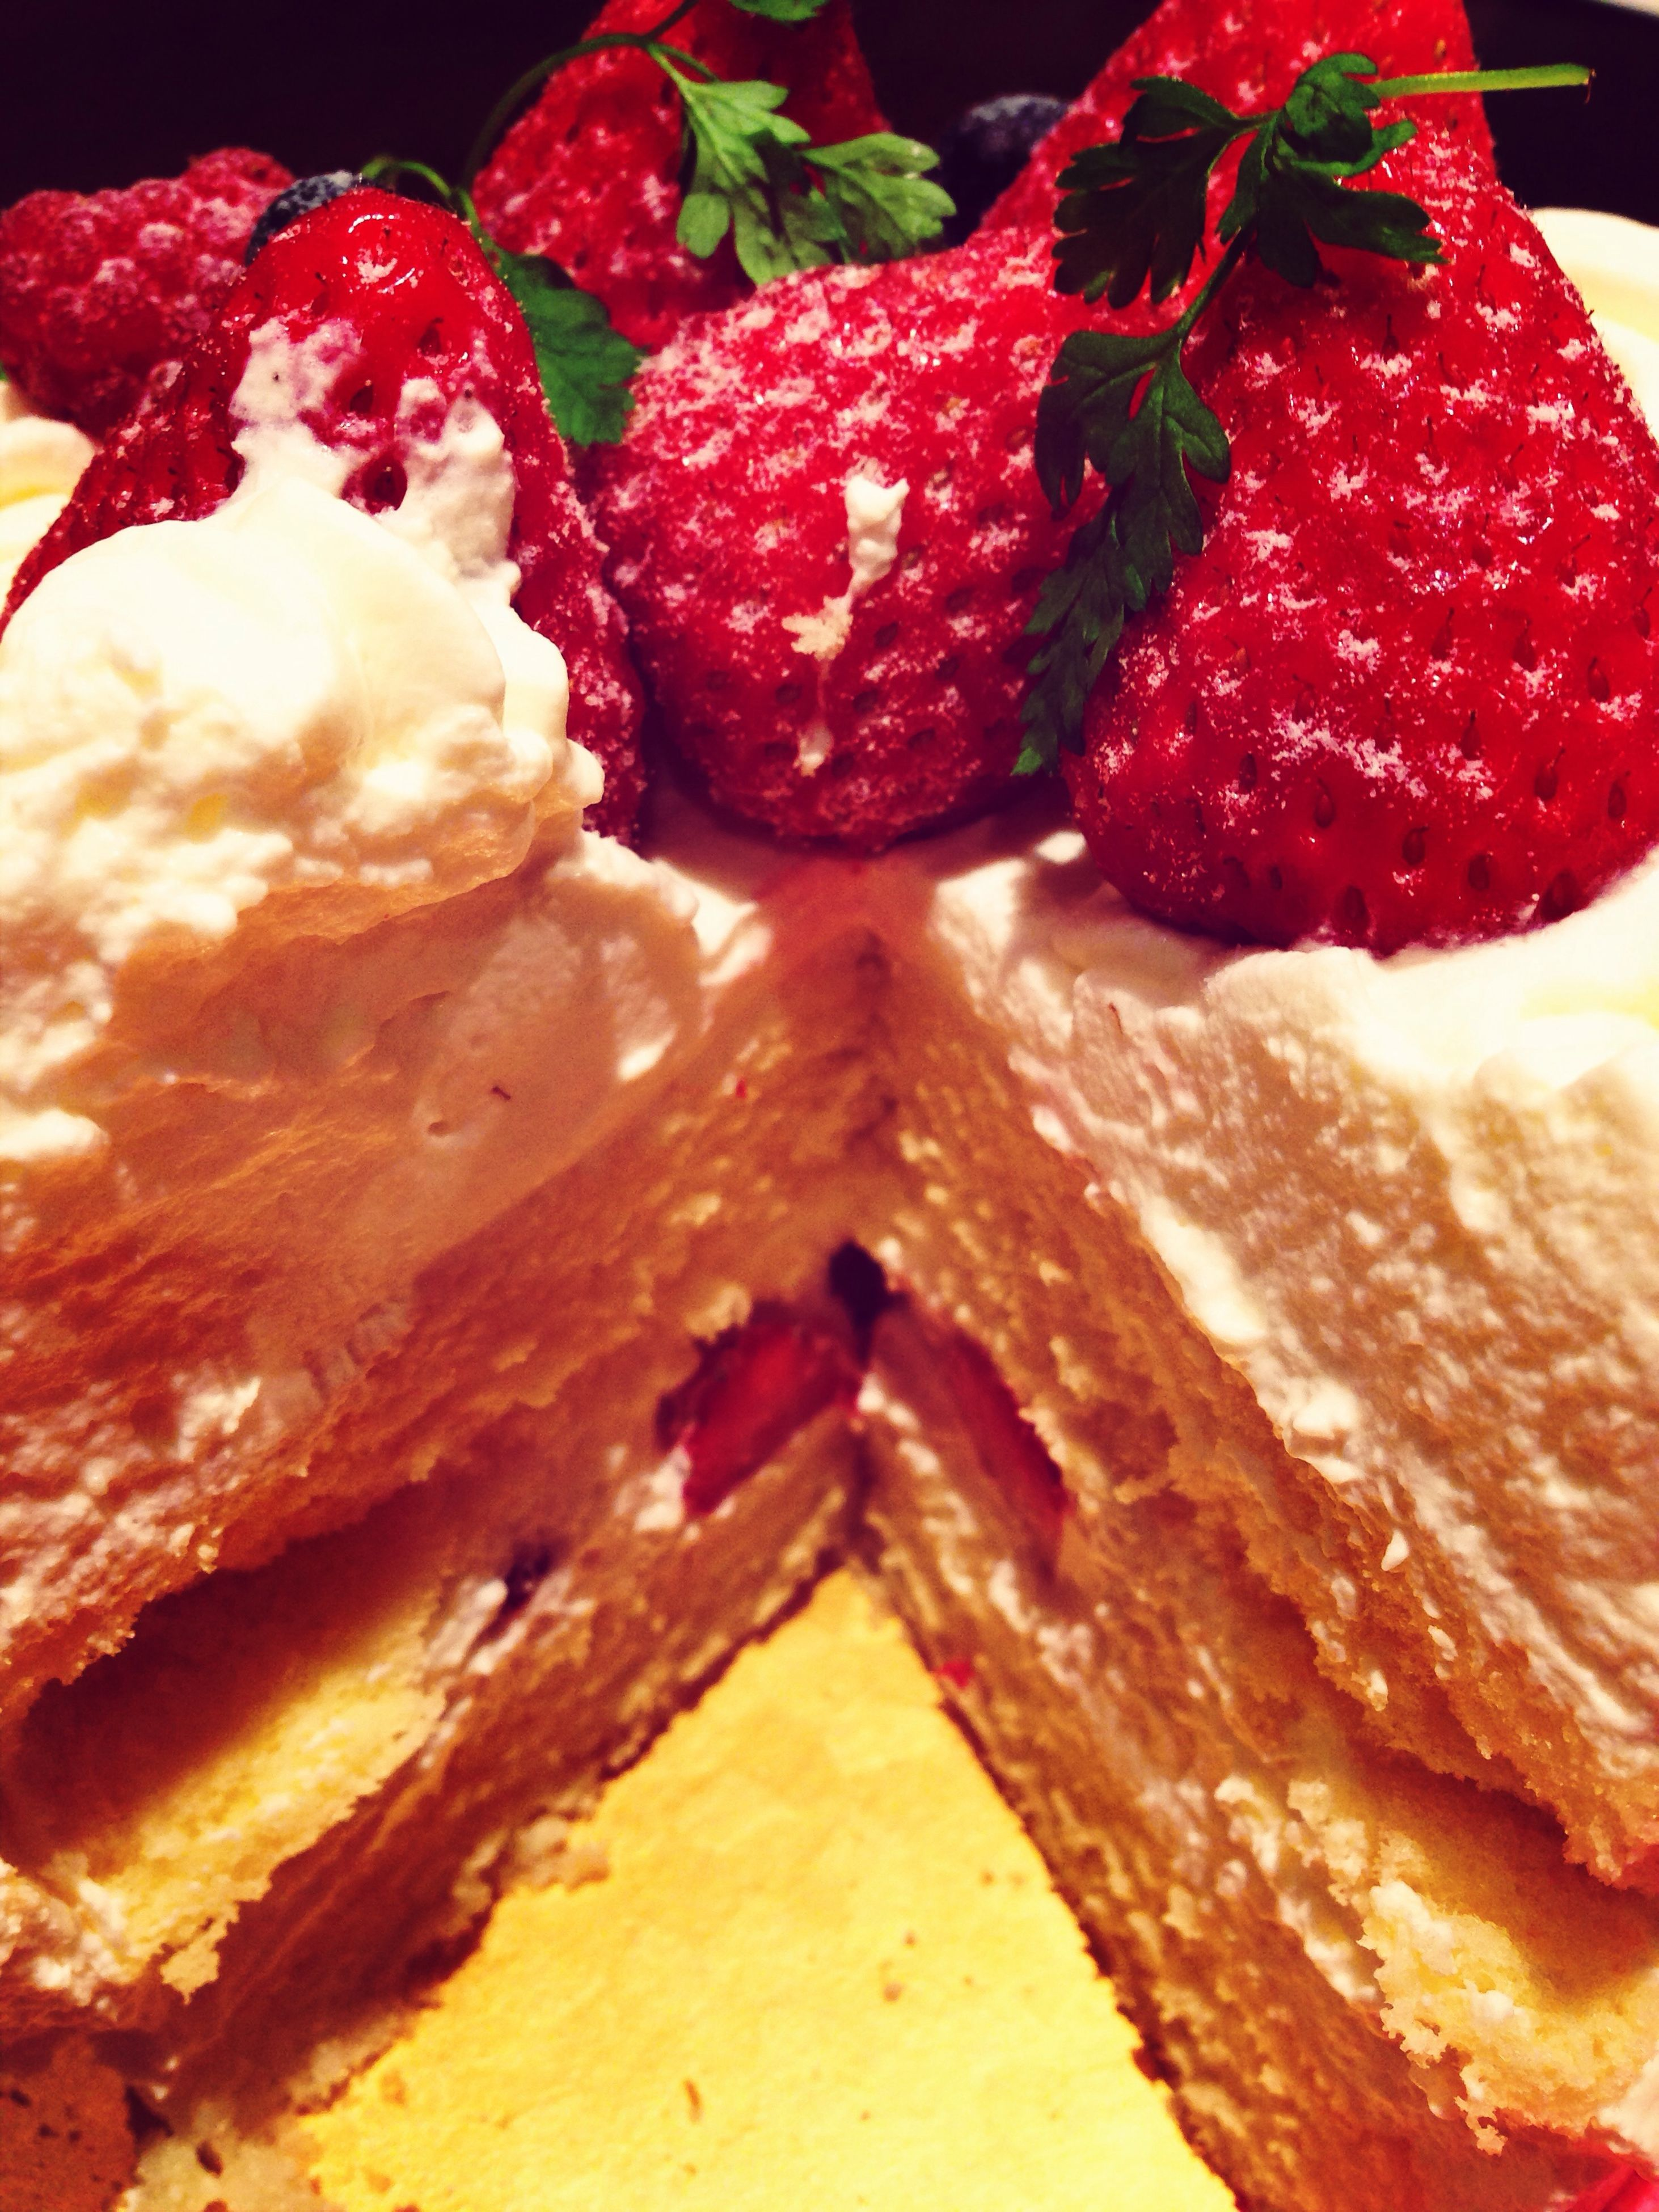 food and drink, food, freshness, ready-to-eat, indoors, fruit, strawberry, still life, red, close-up, indulgence, unhealthy eating, sweet food, dessert, temptation, raspberry, berry fruit, plate, slice